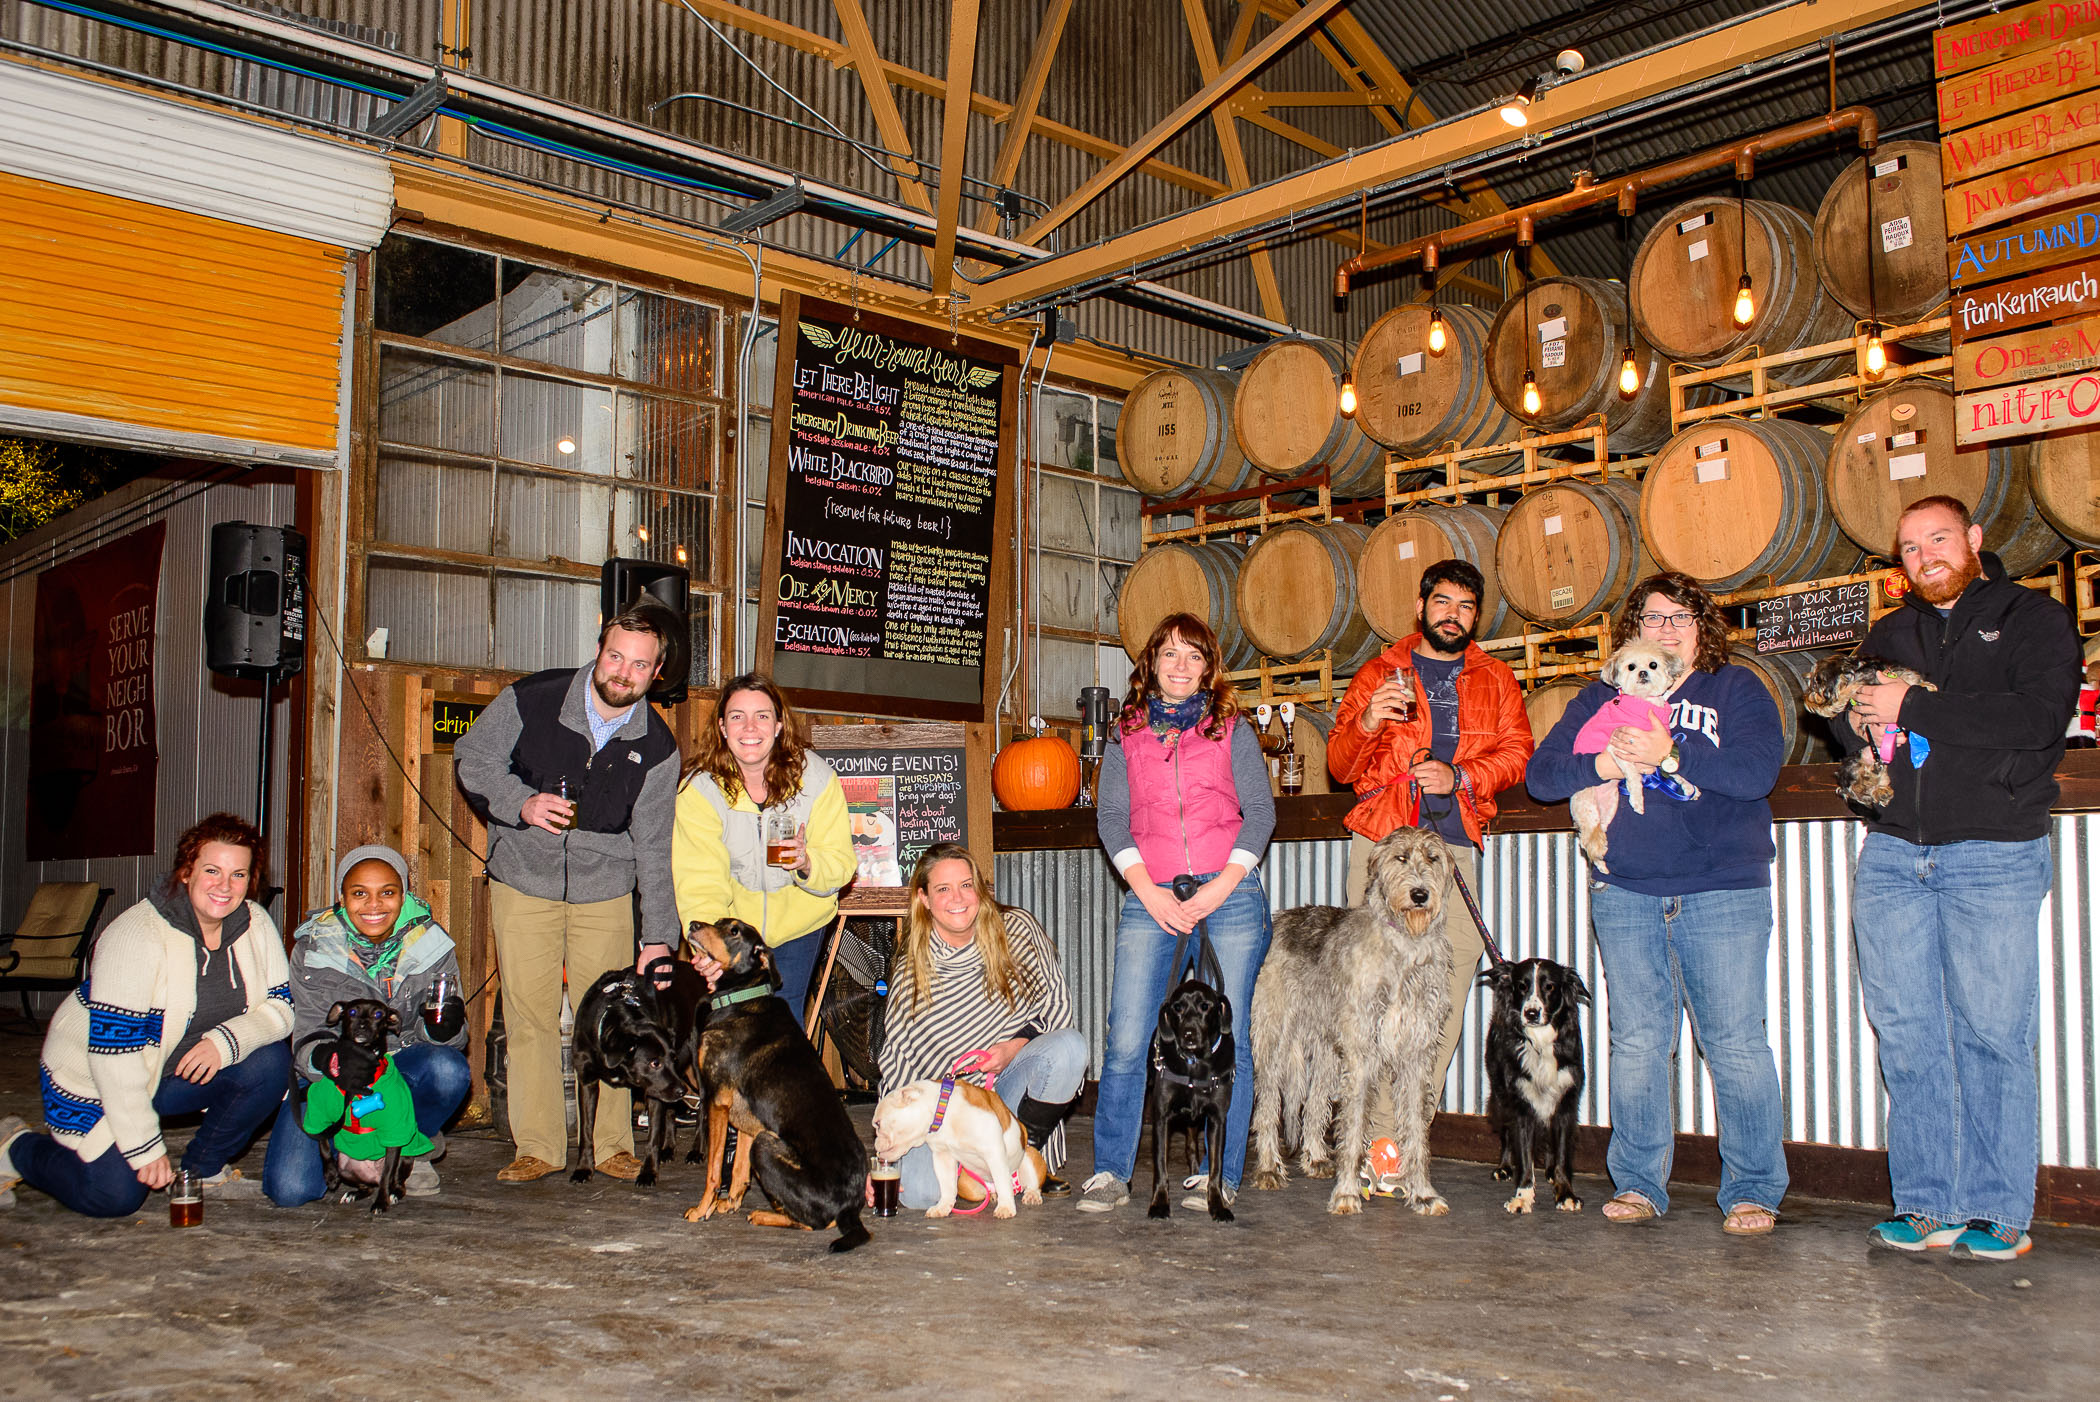 Dogs and humans enjoying the craft beer scene!